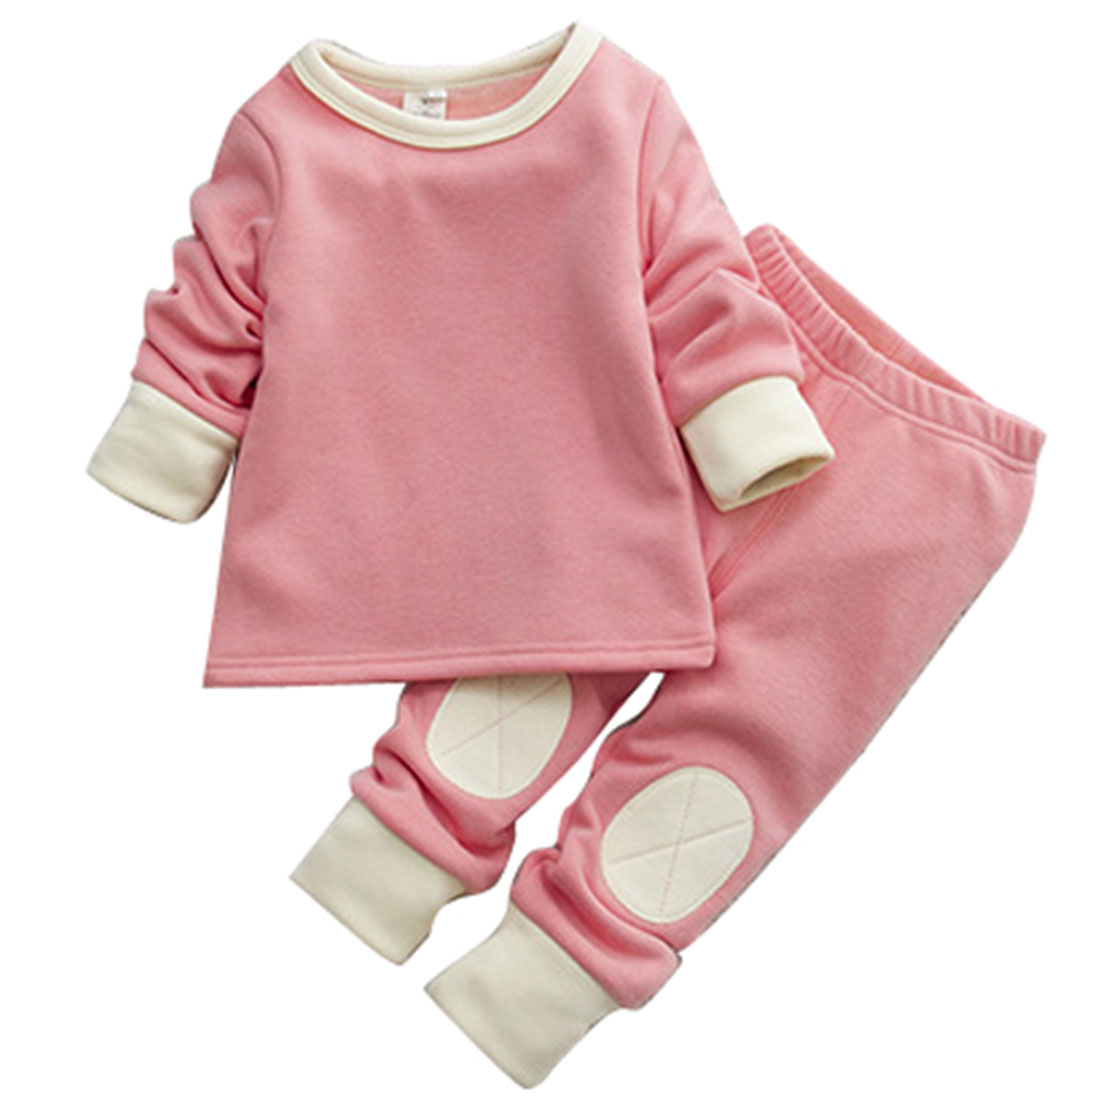 Baby Boys Girls Infant Warm Clothing Sets Cotton 2017 New Autumn Winter Long Sleeve Shirt + Long Pants Lovely Cute Pink Coffee warm thicken baby rompers long sleeve organic cotton autumn